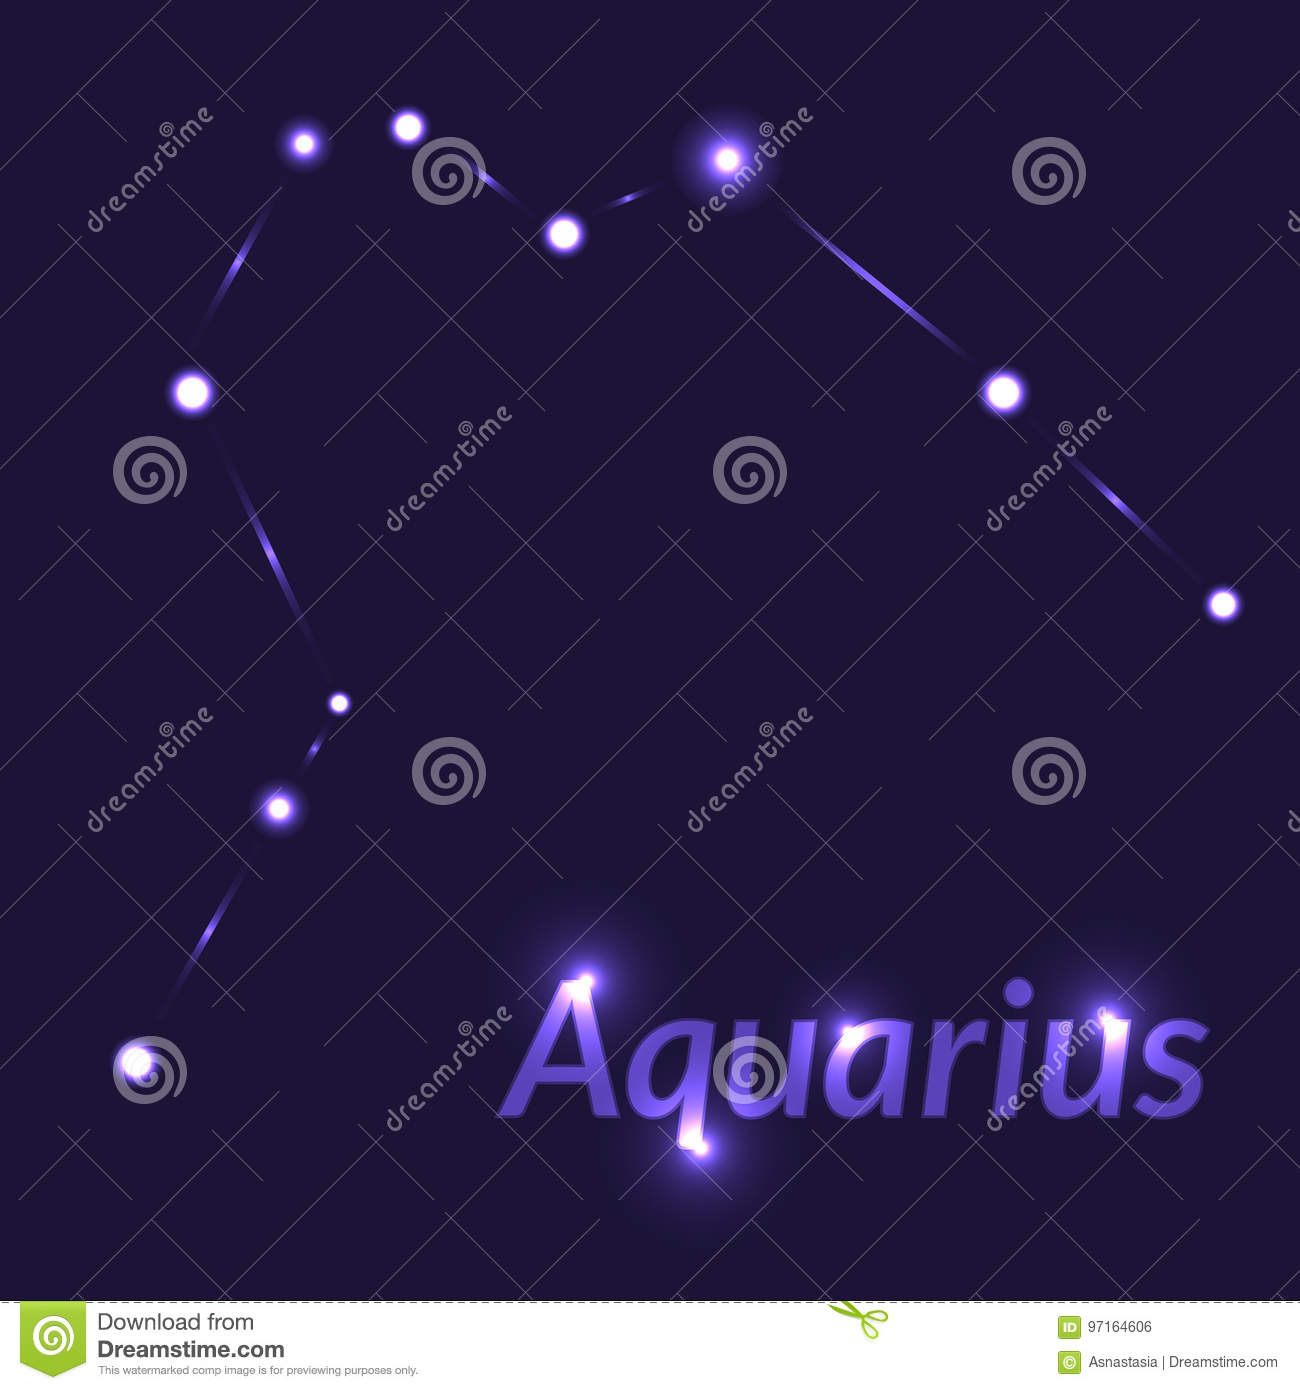 The Water Bearer Aquarius Sing Star Constellation Element Age Of